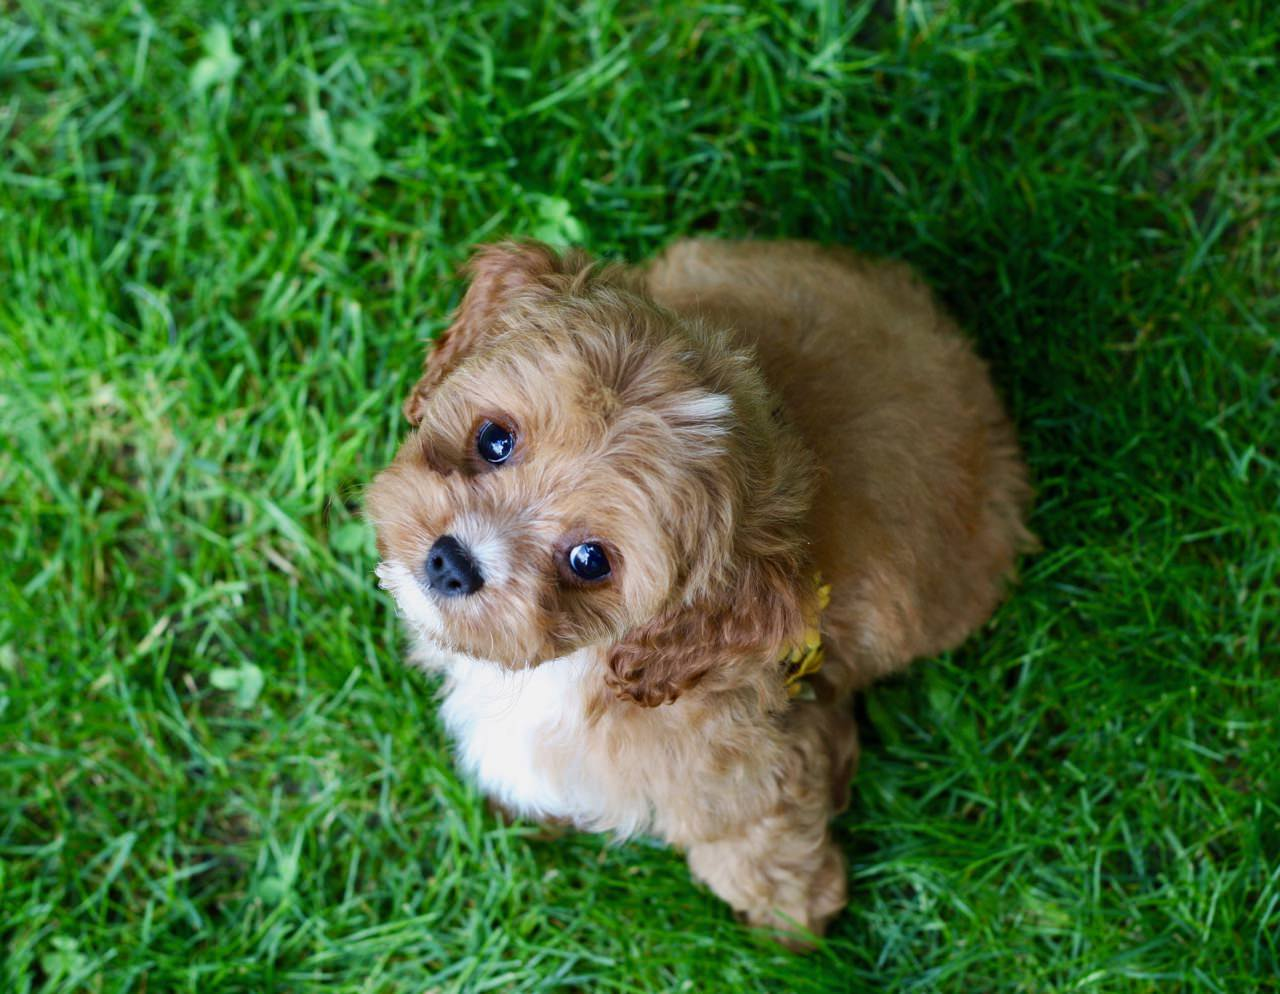 Cavapoo puppy playing outdoors